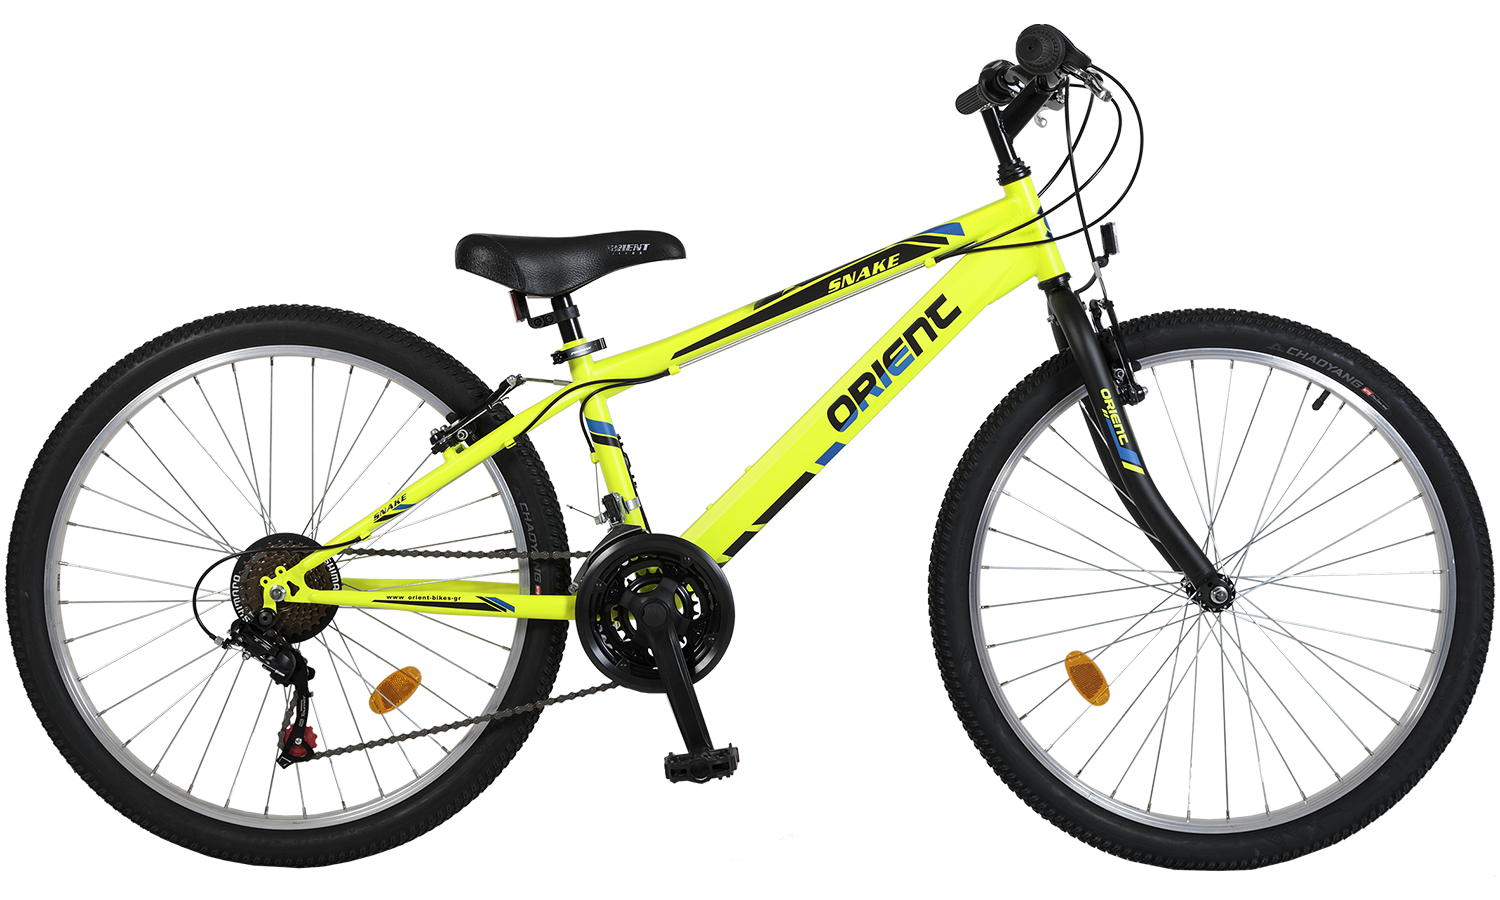 SNAKE 26″ 21sp. bike image